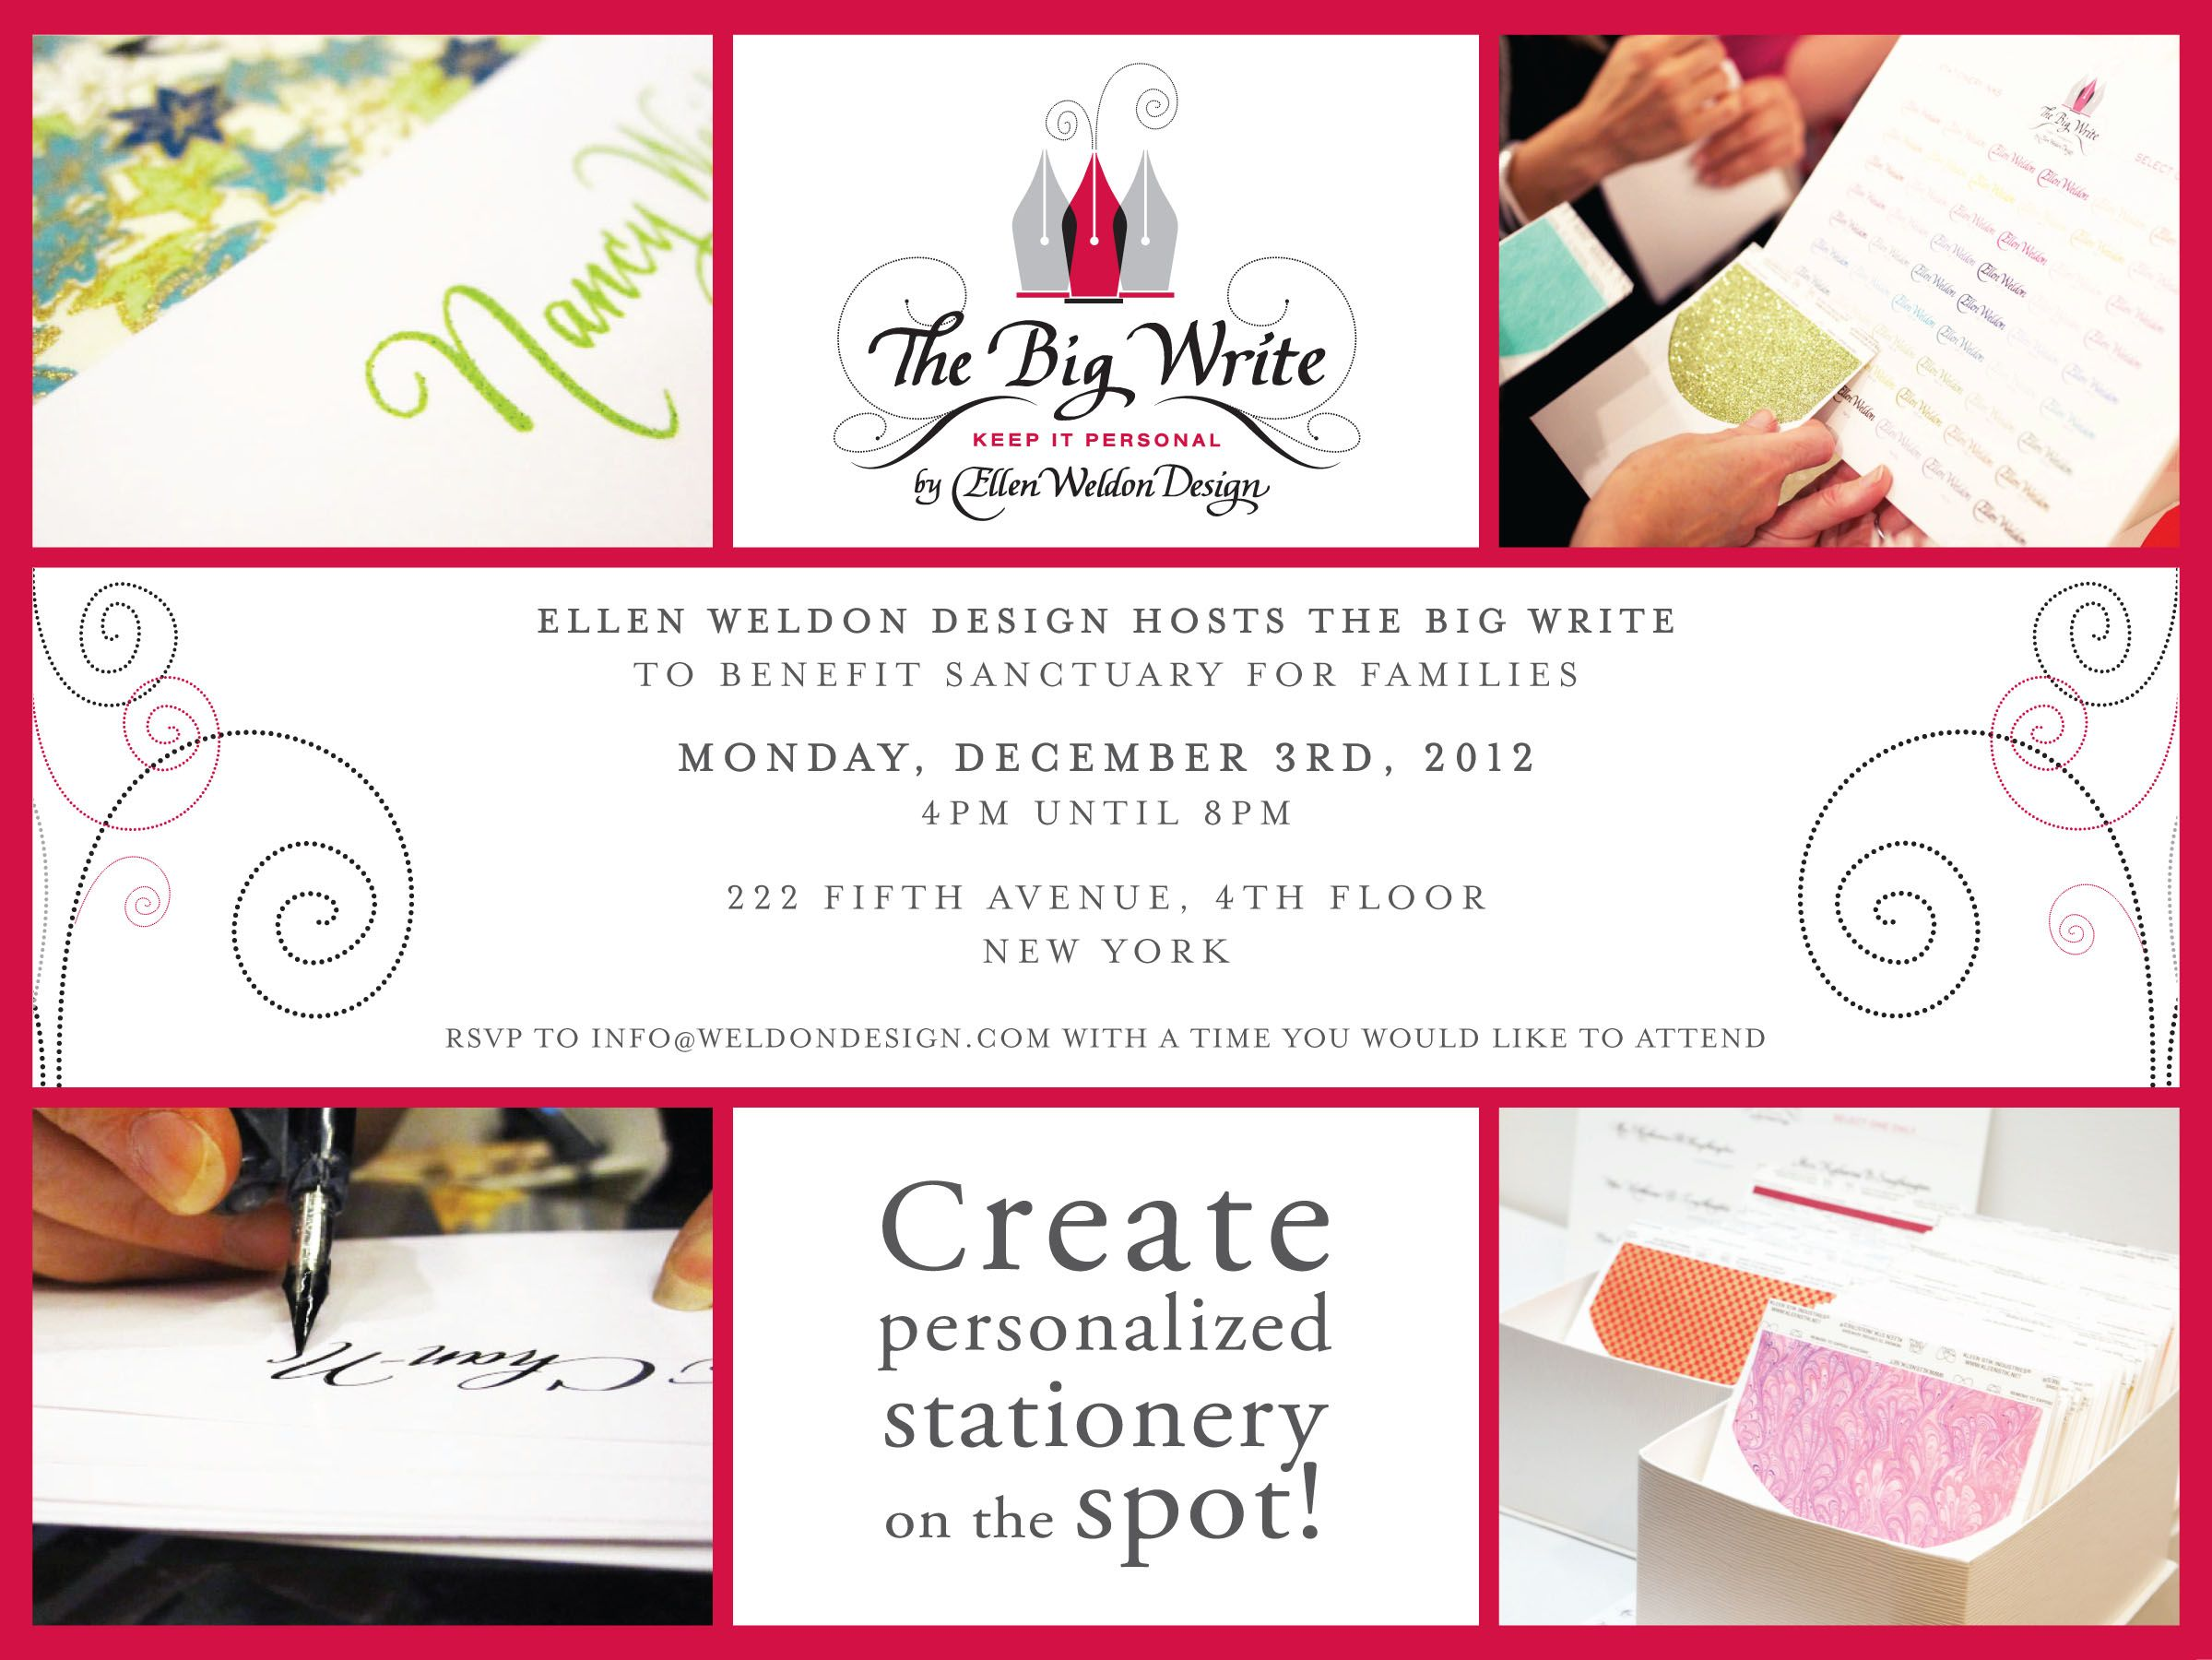 This is a fab event! Your chance to Give Back . Get & Gift all at the same time!   Just in time for the Holidays!     Give the gift or give to yourself!   It's for a very good cause.   Just make sure you RSVP.  PattyonSite